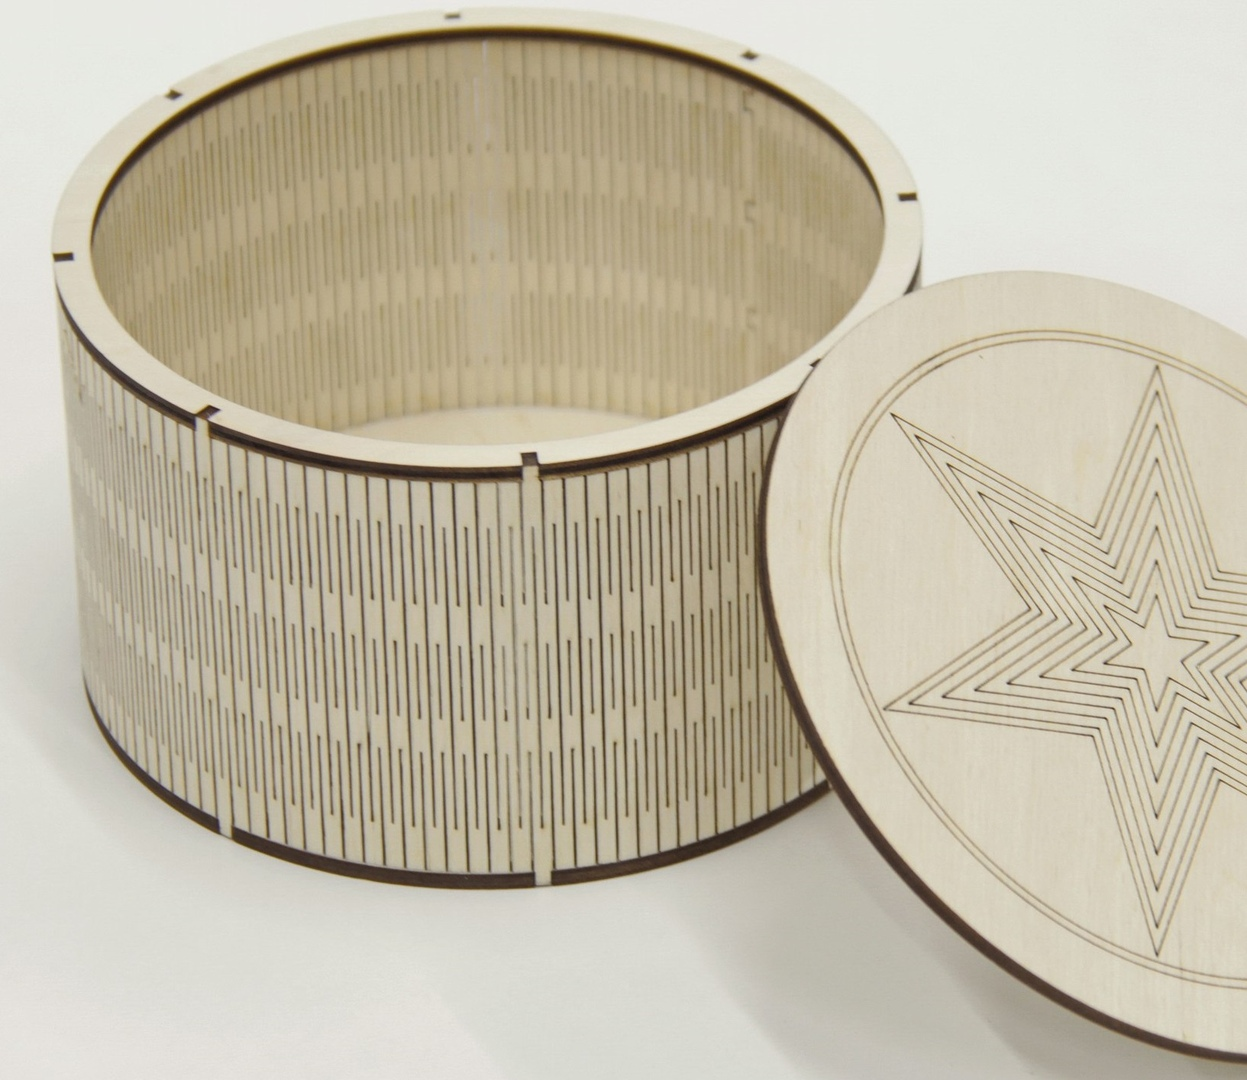 Laser Cut Round Wood Box With Lid Living Hinge Box Free CDR Vectors Art